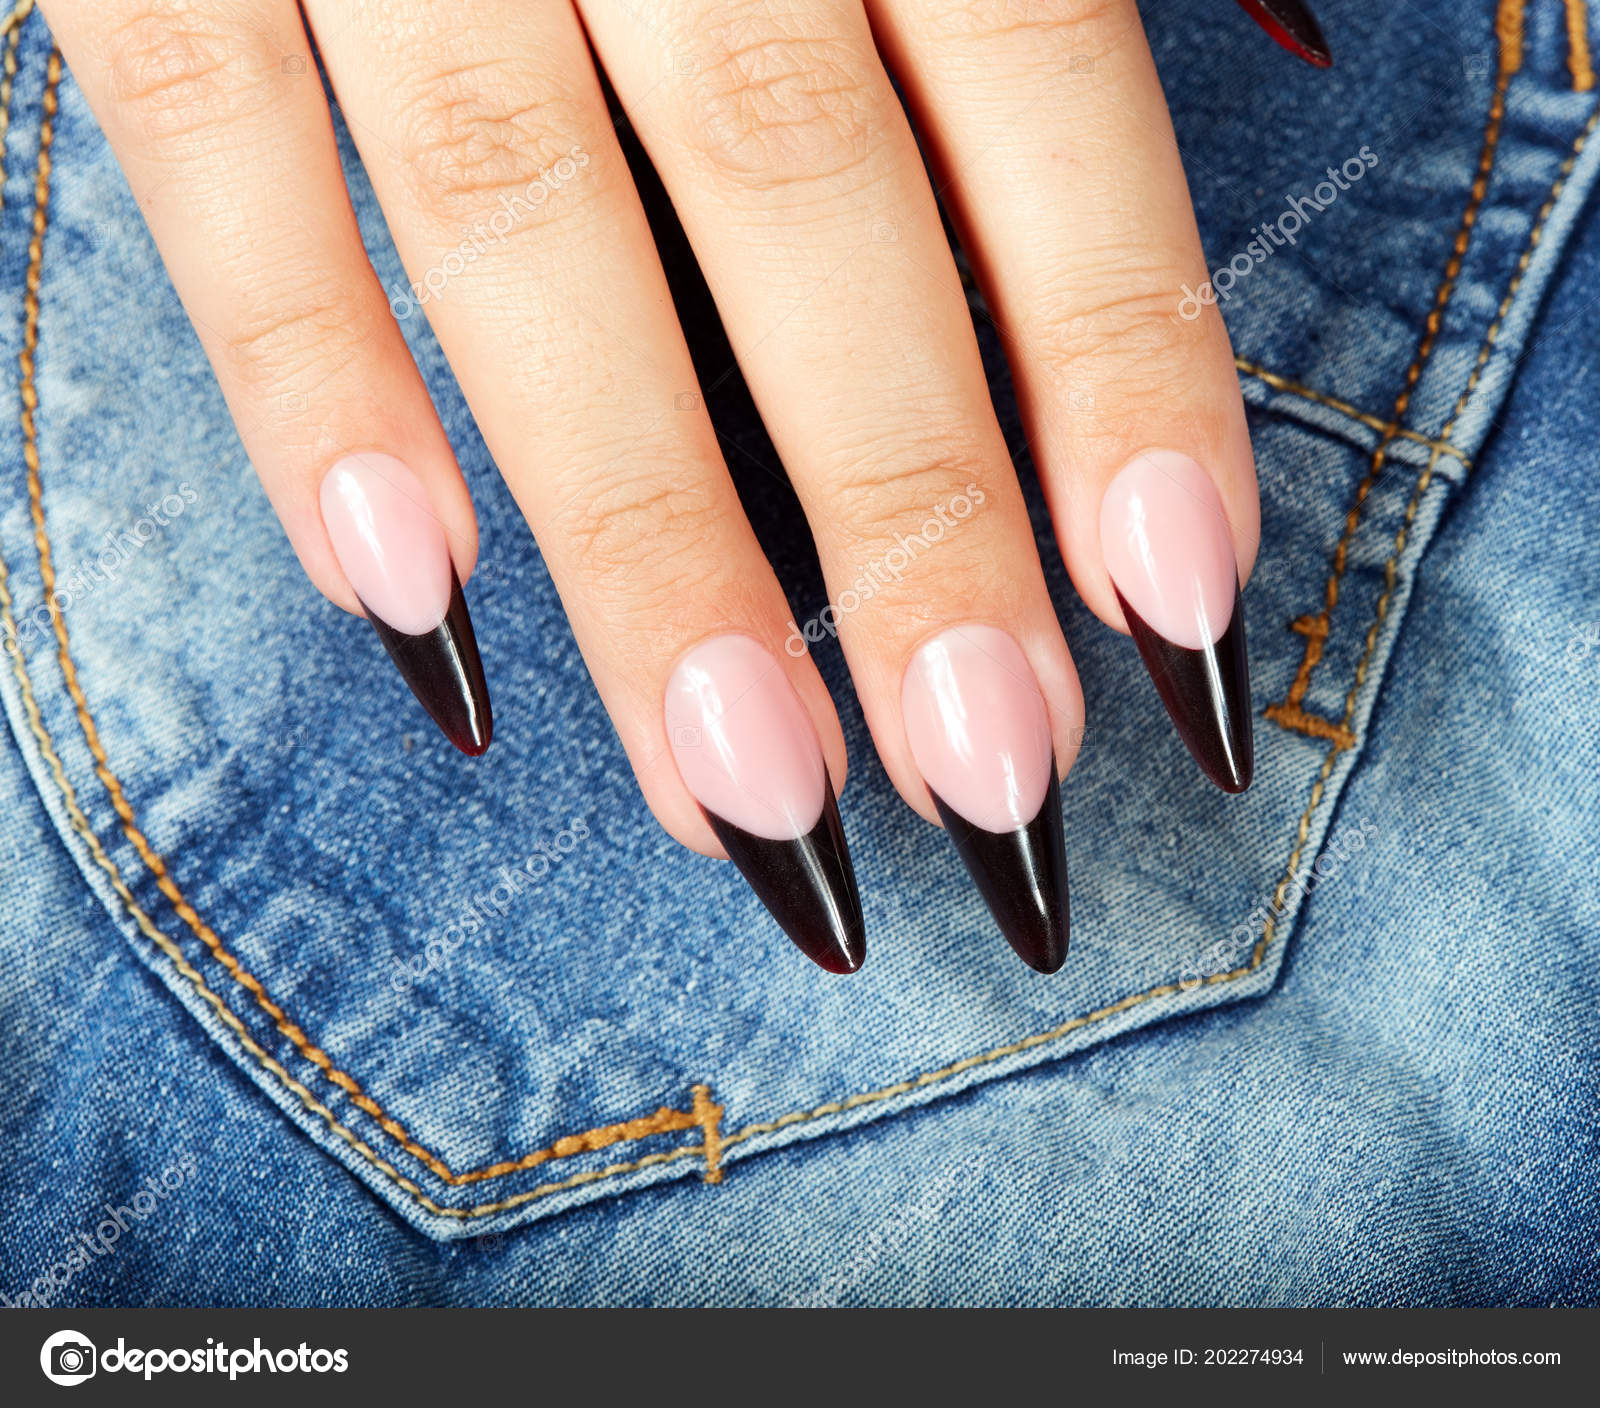 Hand Long Artificial Black French Manicured Nails Jeans Textile